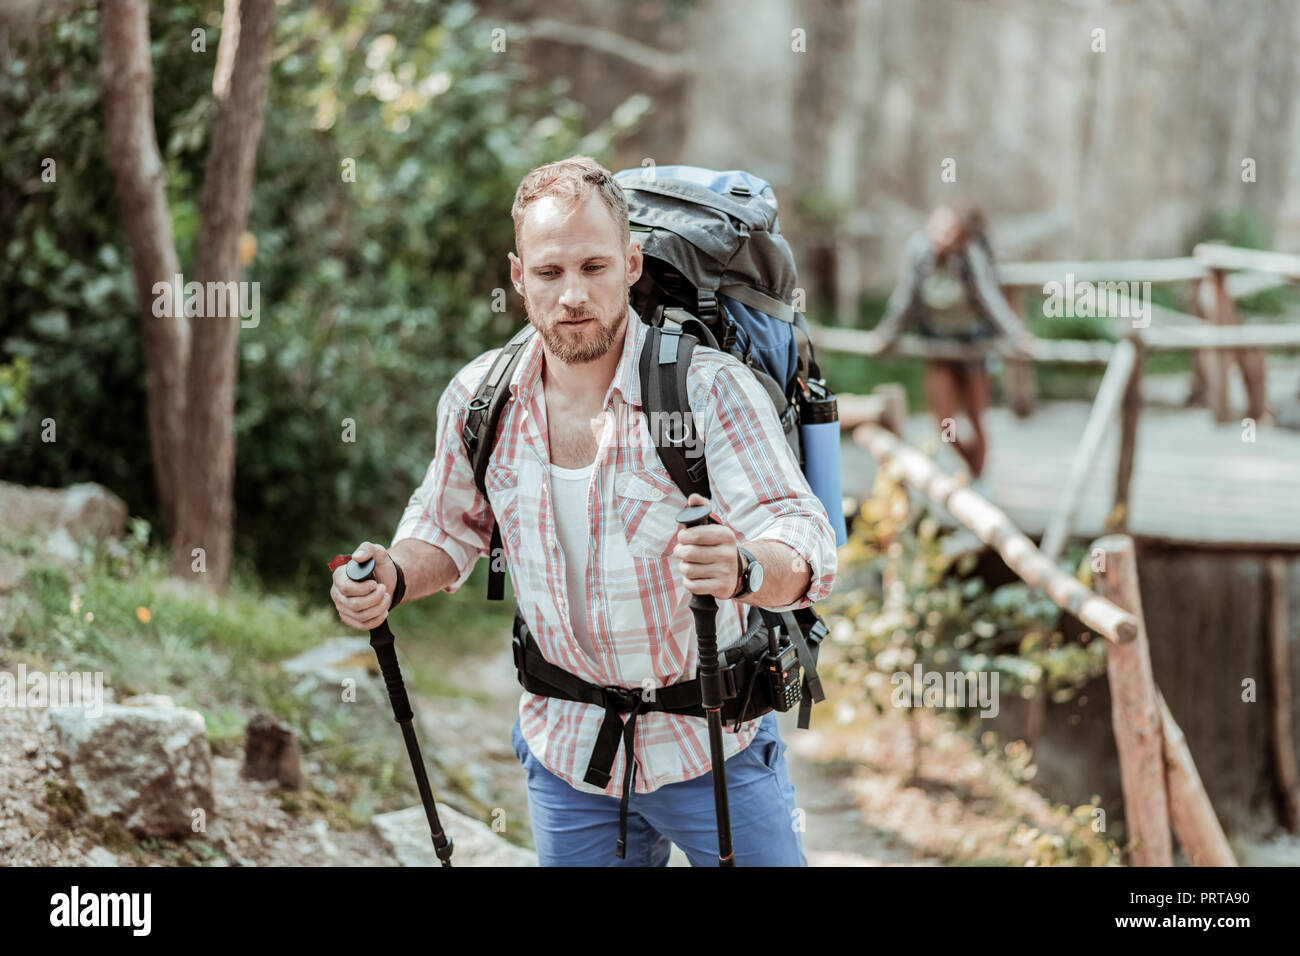 Handsome bearded blonde-haired man enjoying his weekend with walking poles - Stock Image